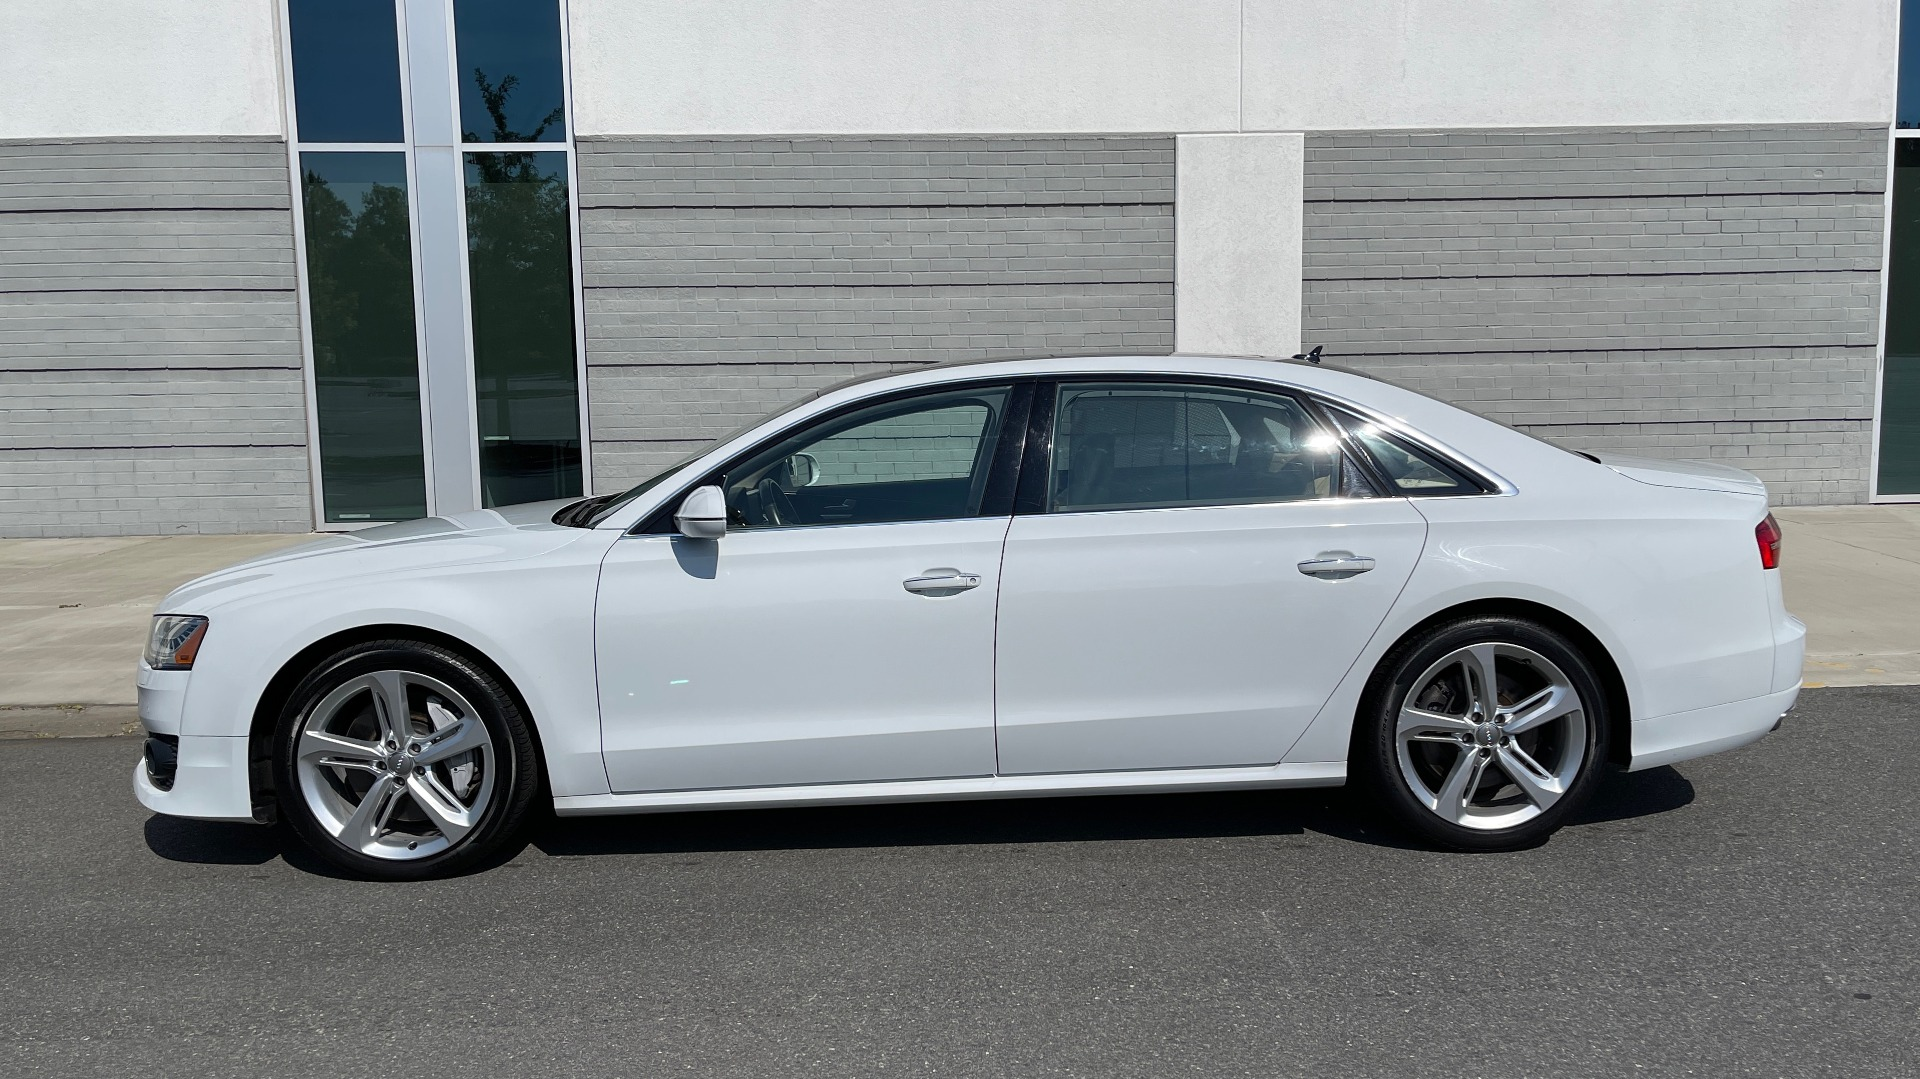 Used 2018 Audi A8 L SPORT 4.0T / EXECUTIVE PKG / NAV / BOSE / SUNROOF / REARVIEW for sale Sold at Formula Imports in Charlotte NC 28227 3